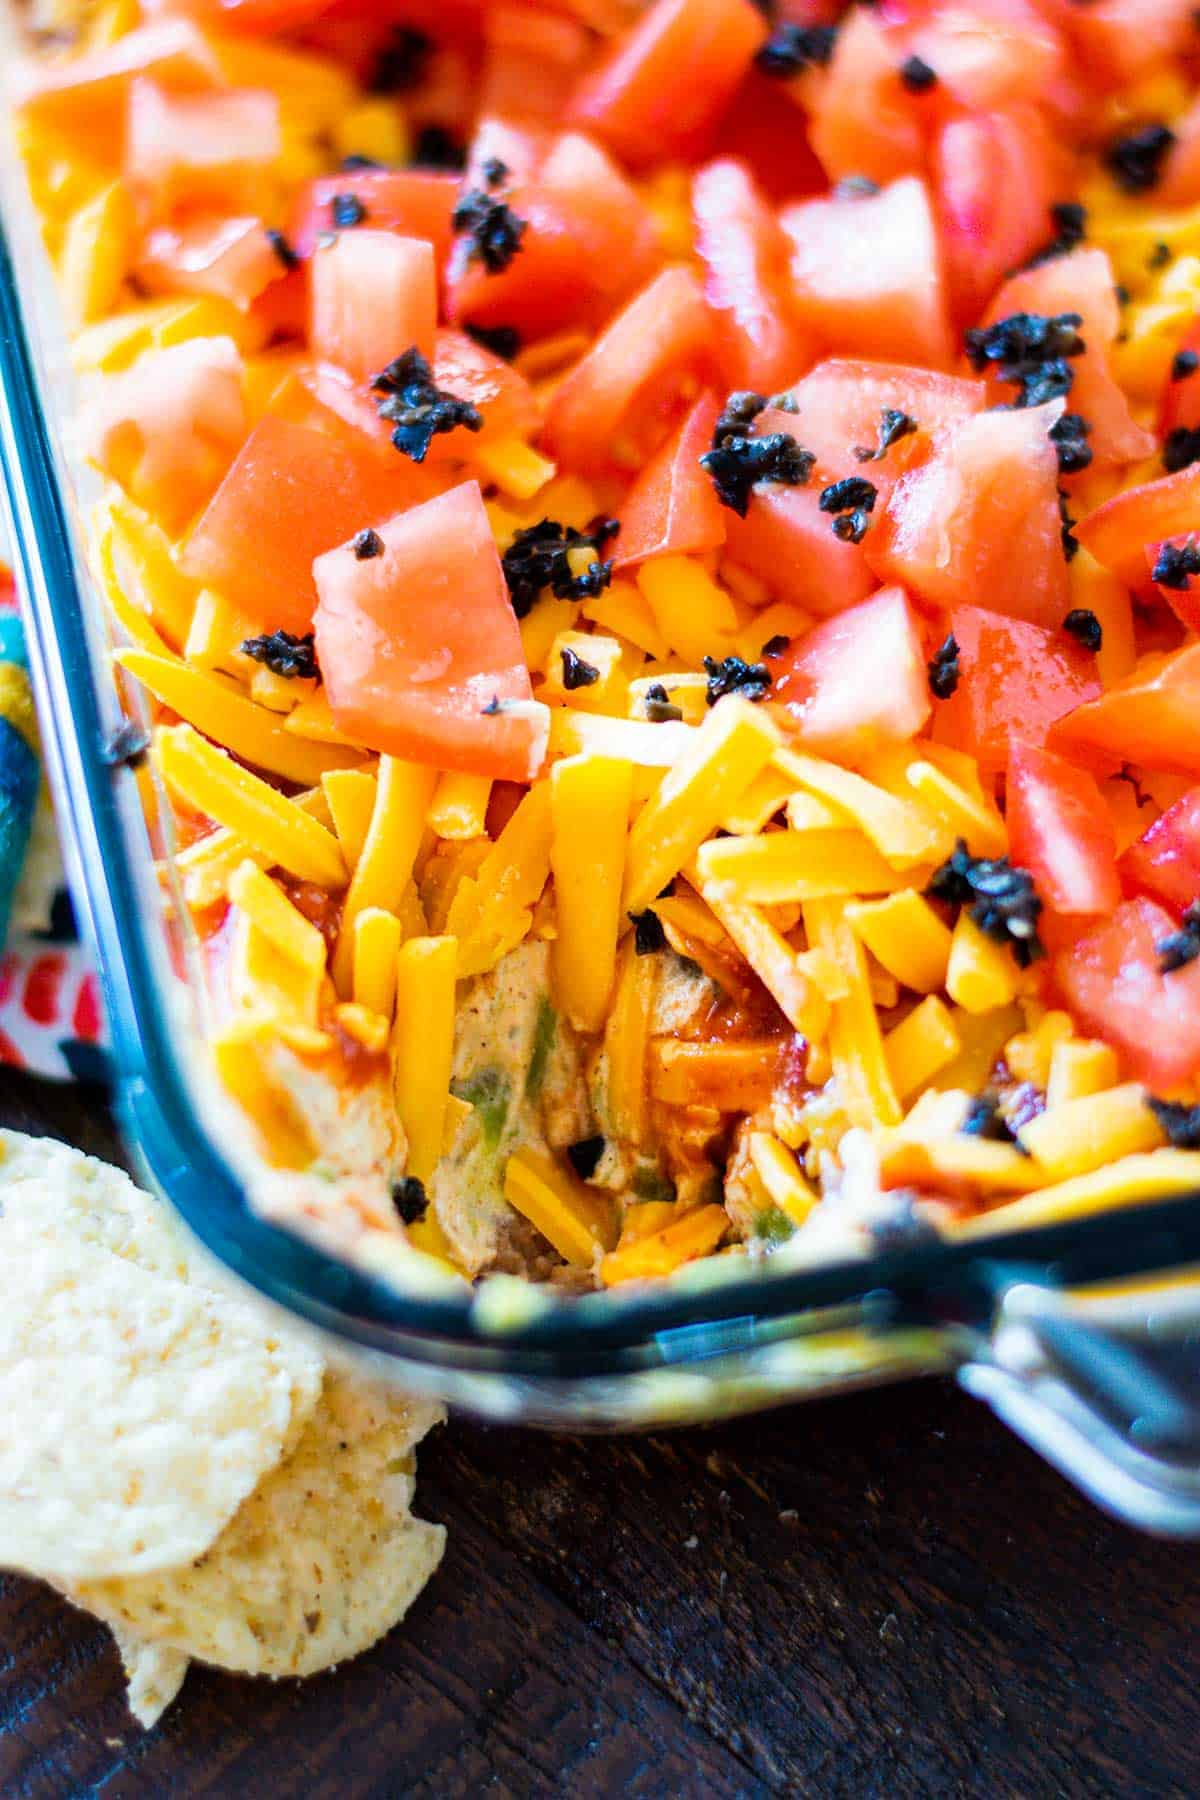 Image of a Mexican seven layer dip in a glass bowl with a scoop removed from the dish.